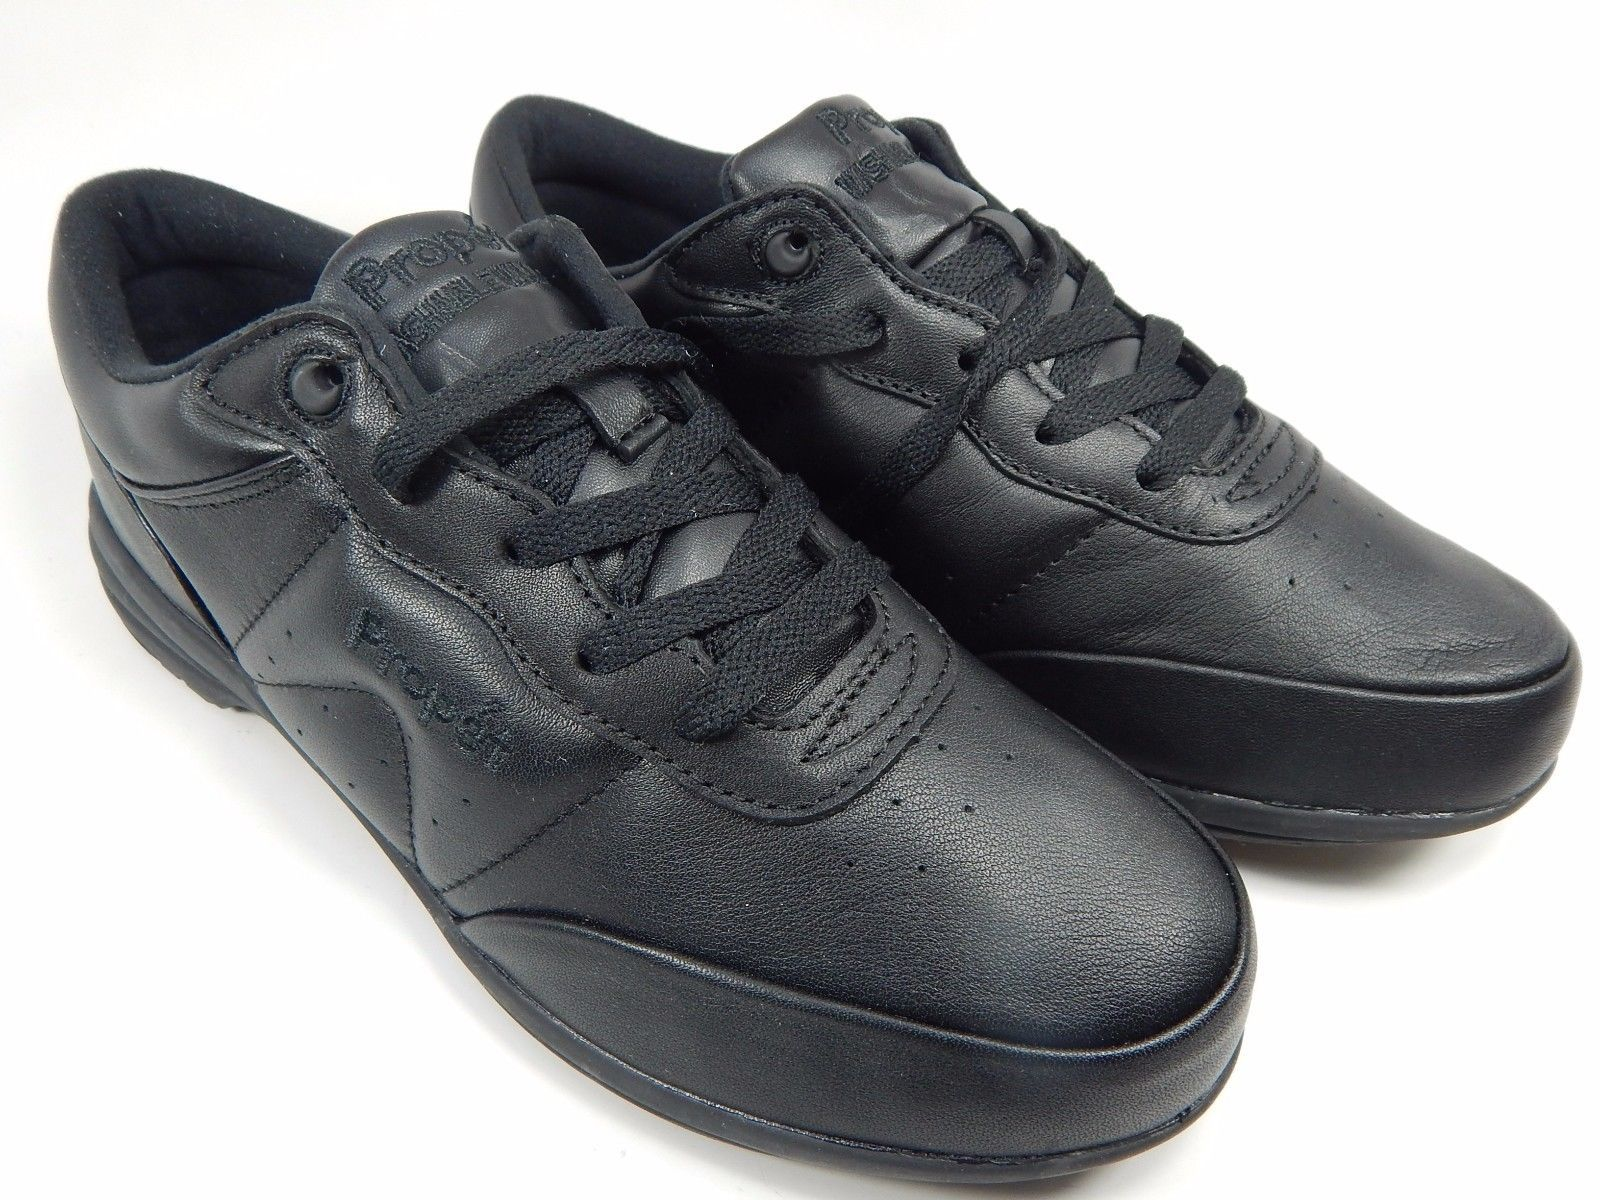 Propet Washable Walker Women's Leather Walking Shoes Size 9.5 M (B) Black W3840